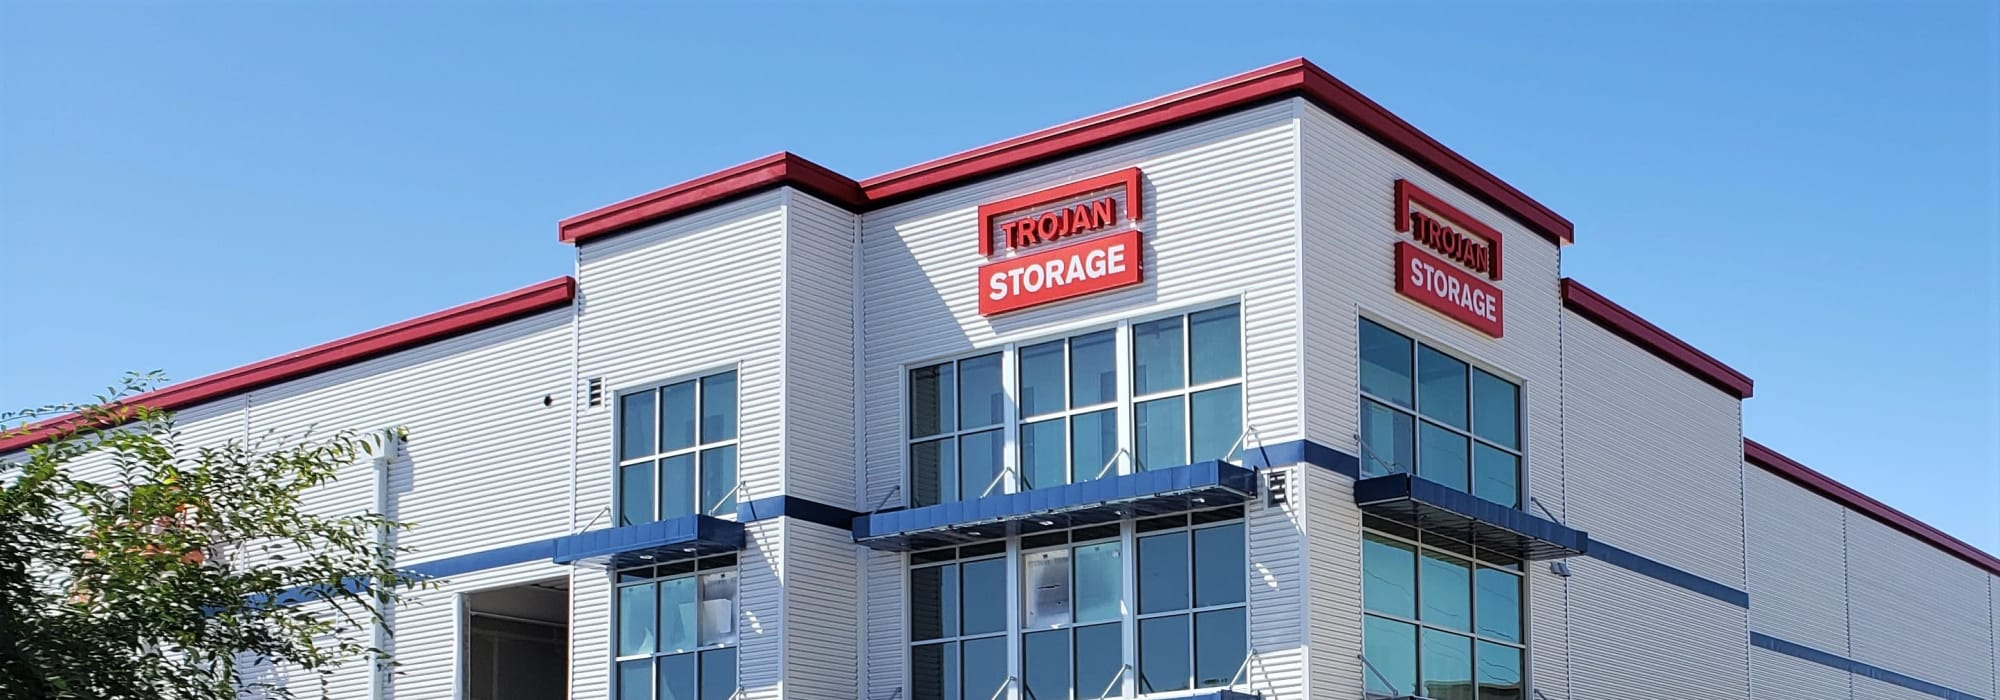 Self storage in San Jose, California